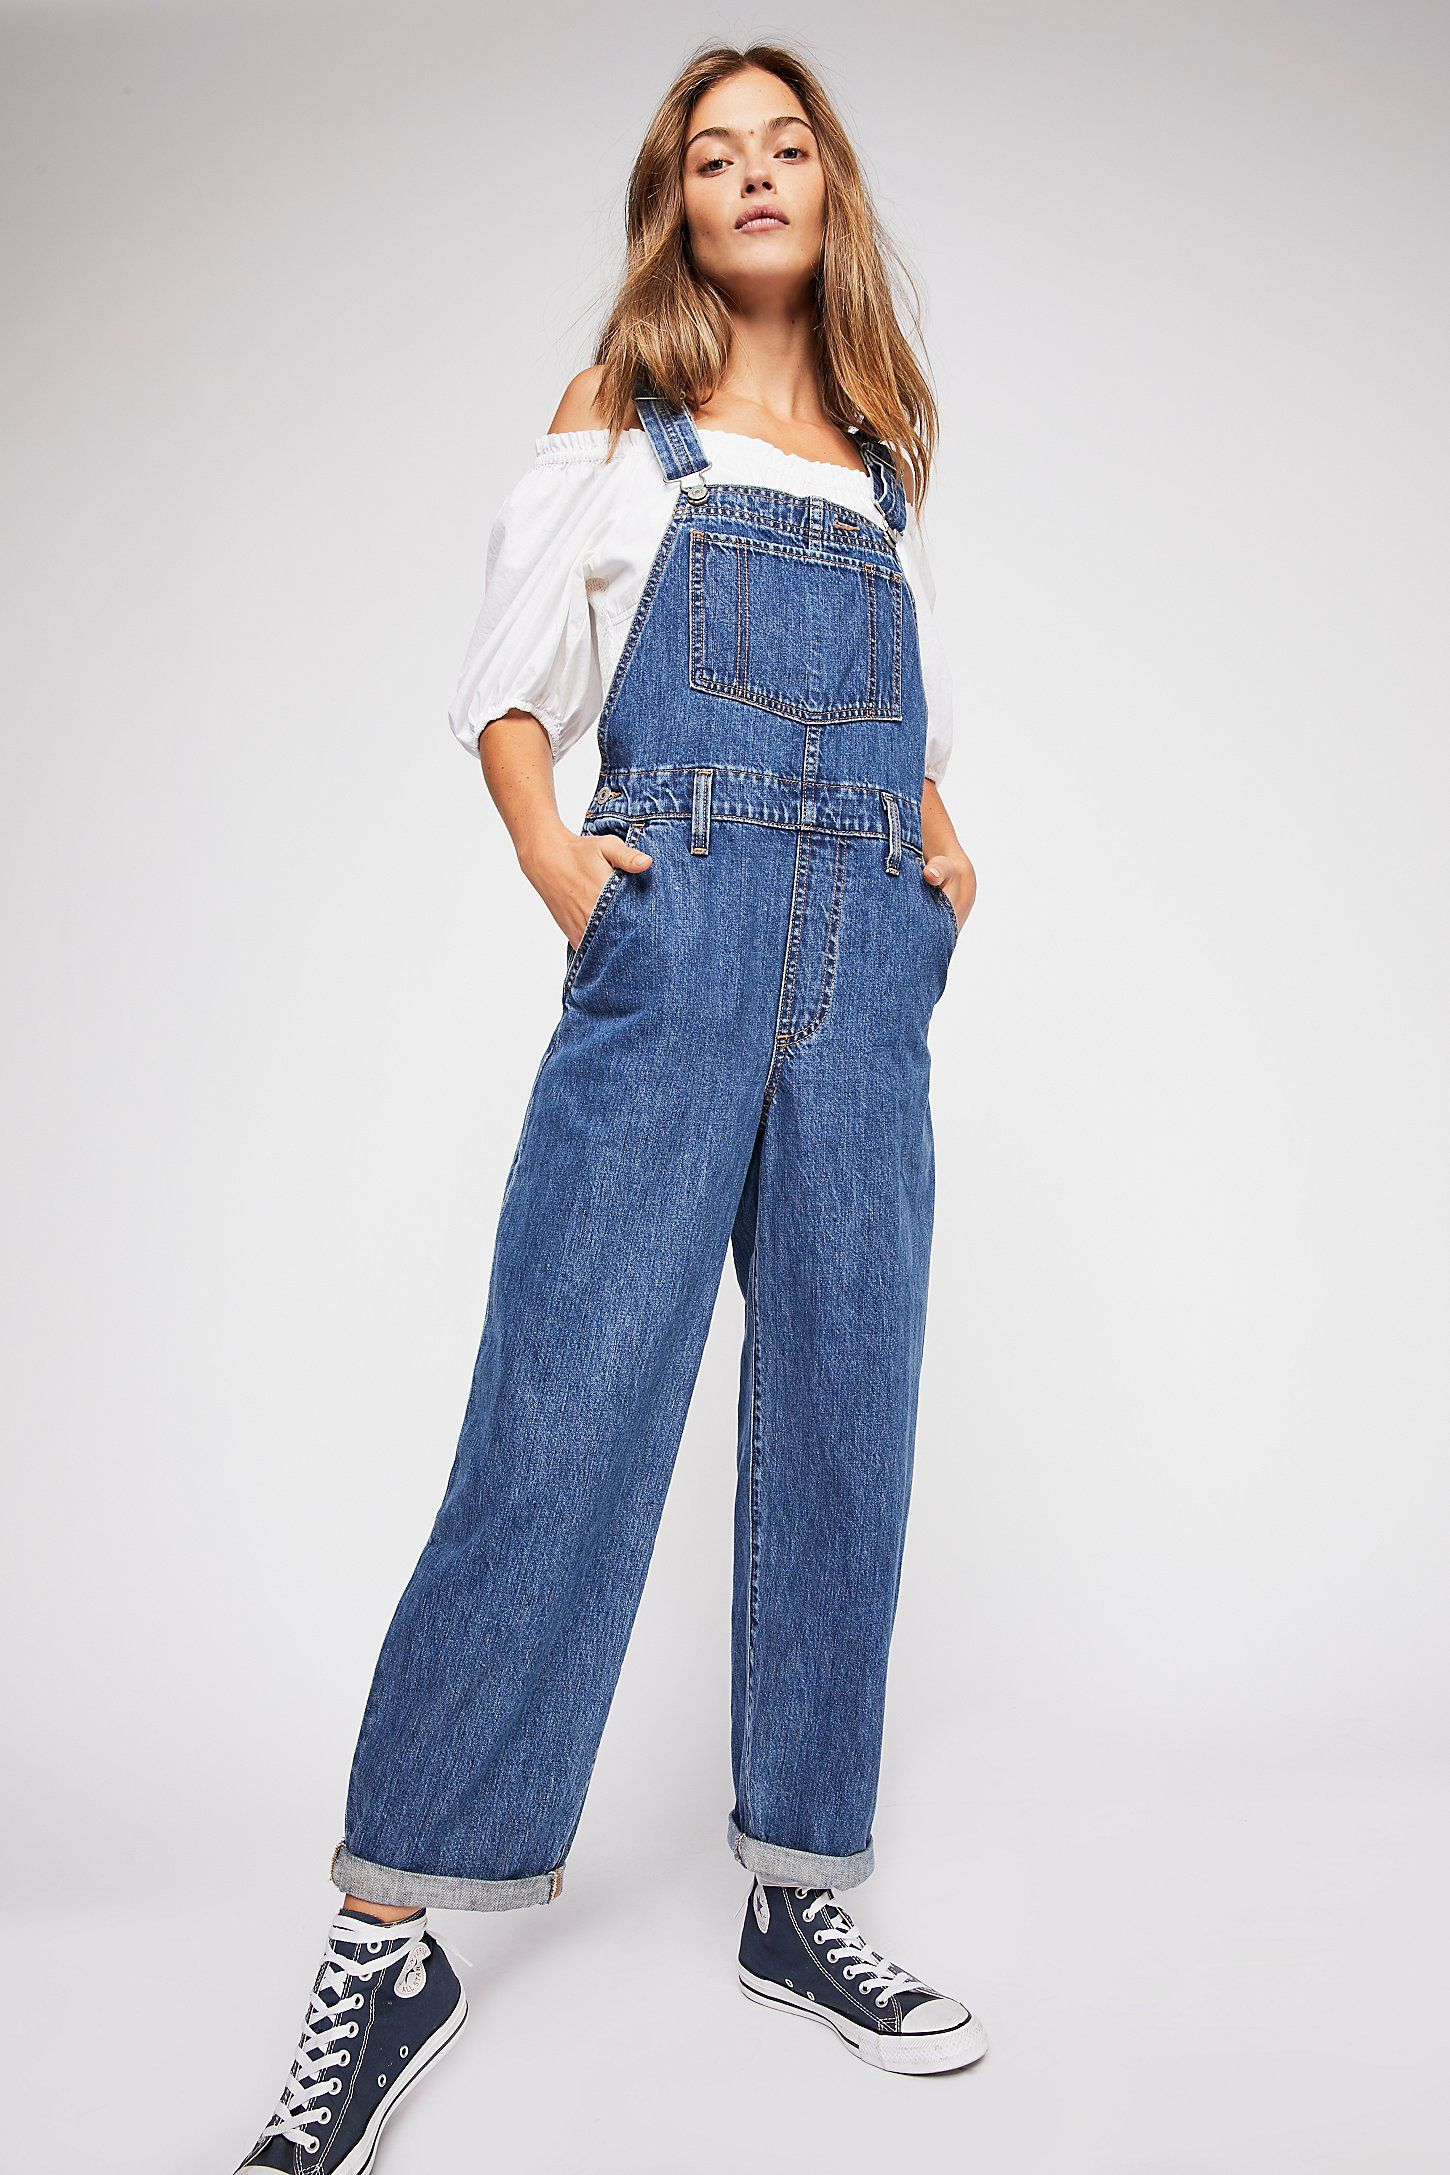 bbf475cab6 Levi s Baggy Denim Overalls in 2019